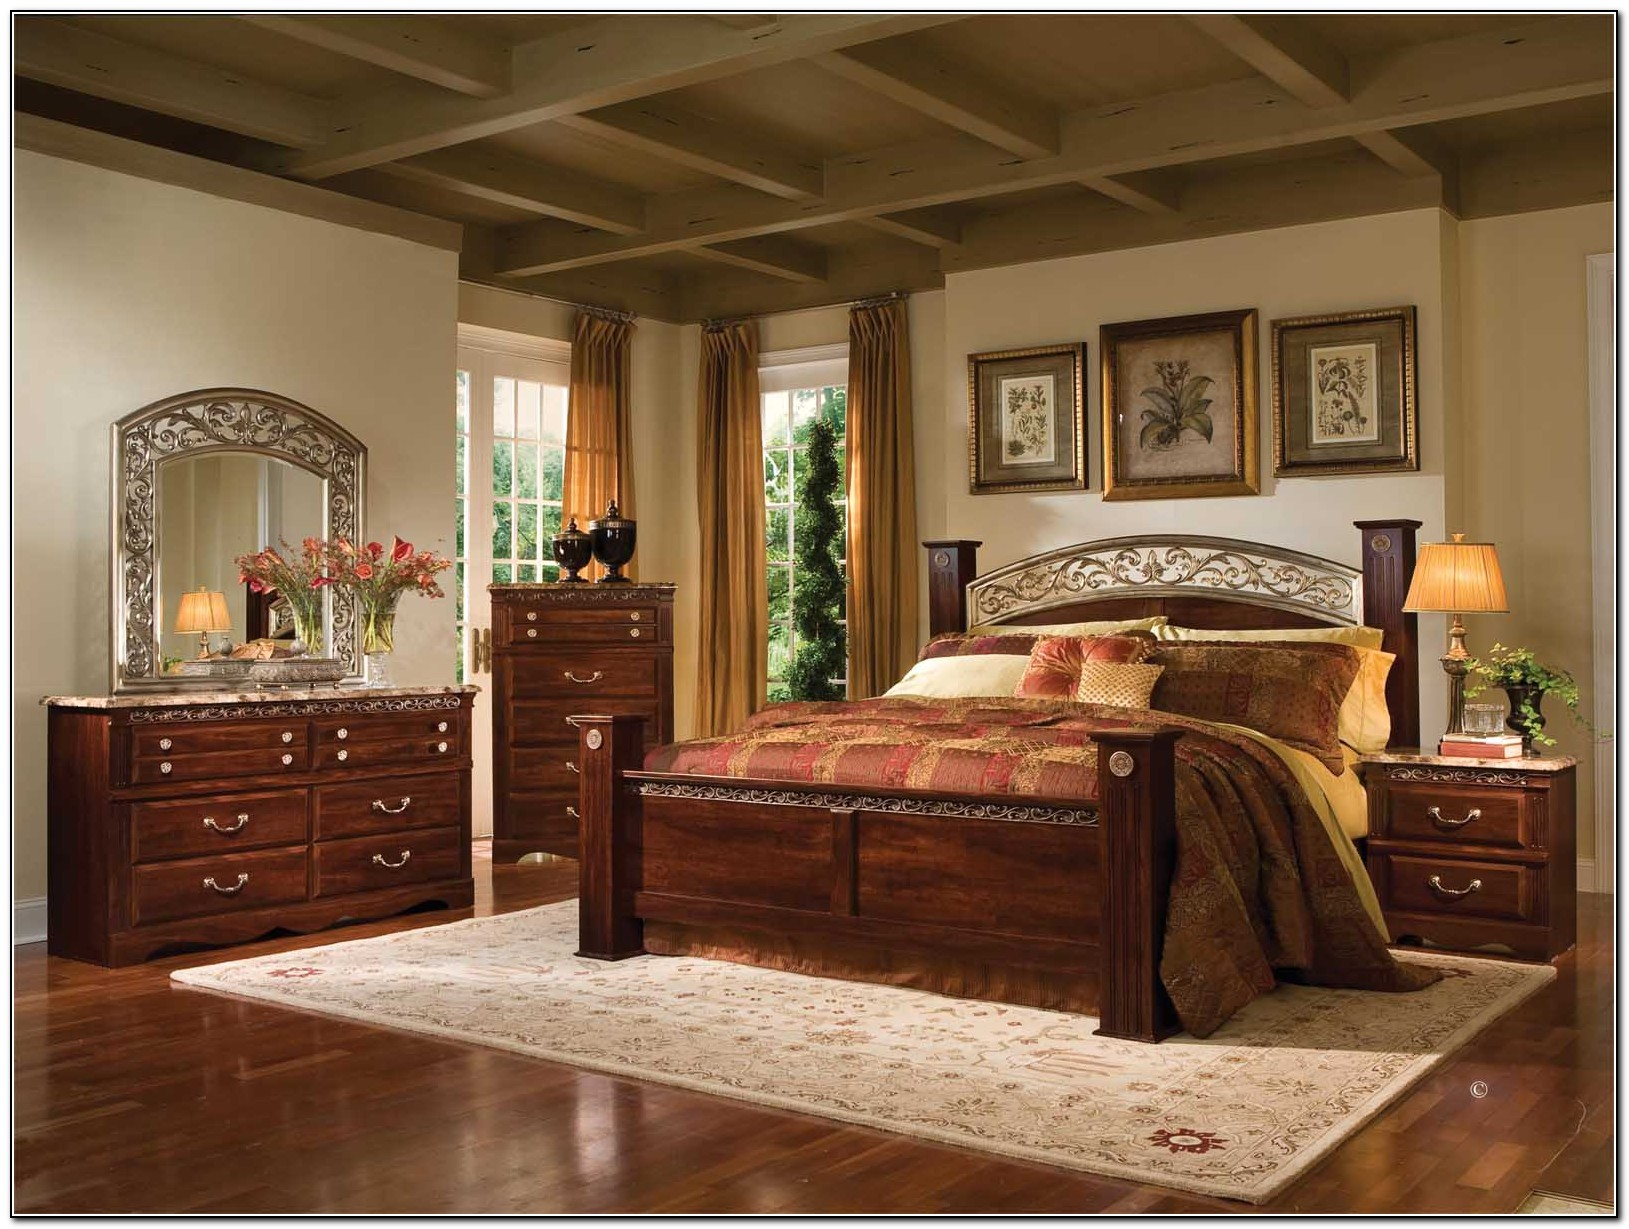 Gorgeous Bedroom Fill with King Size Canopy Bed: Nice Rug And King Size Canopy Bed With Laminate Floor